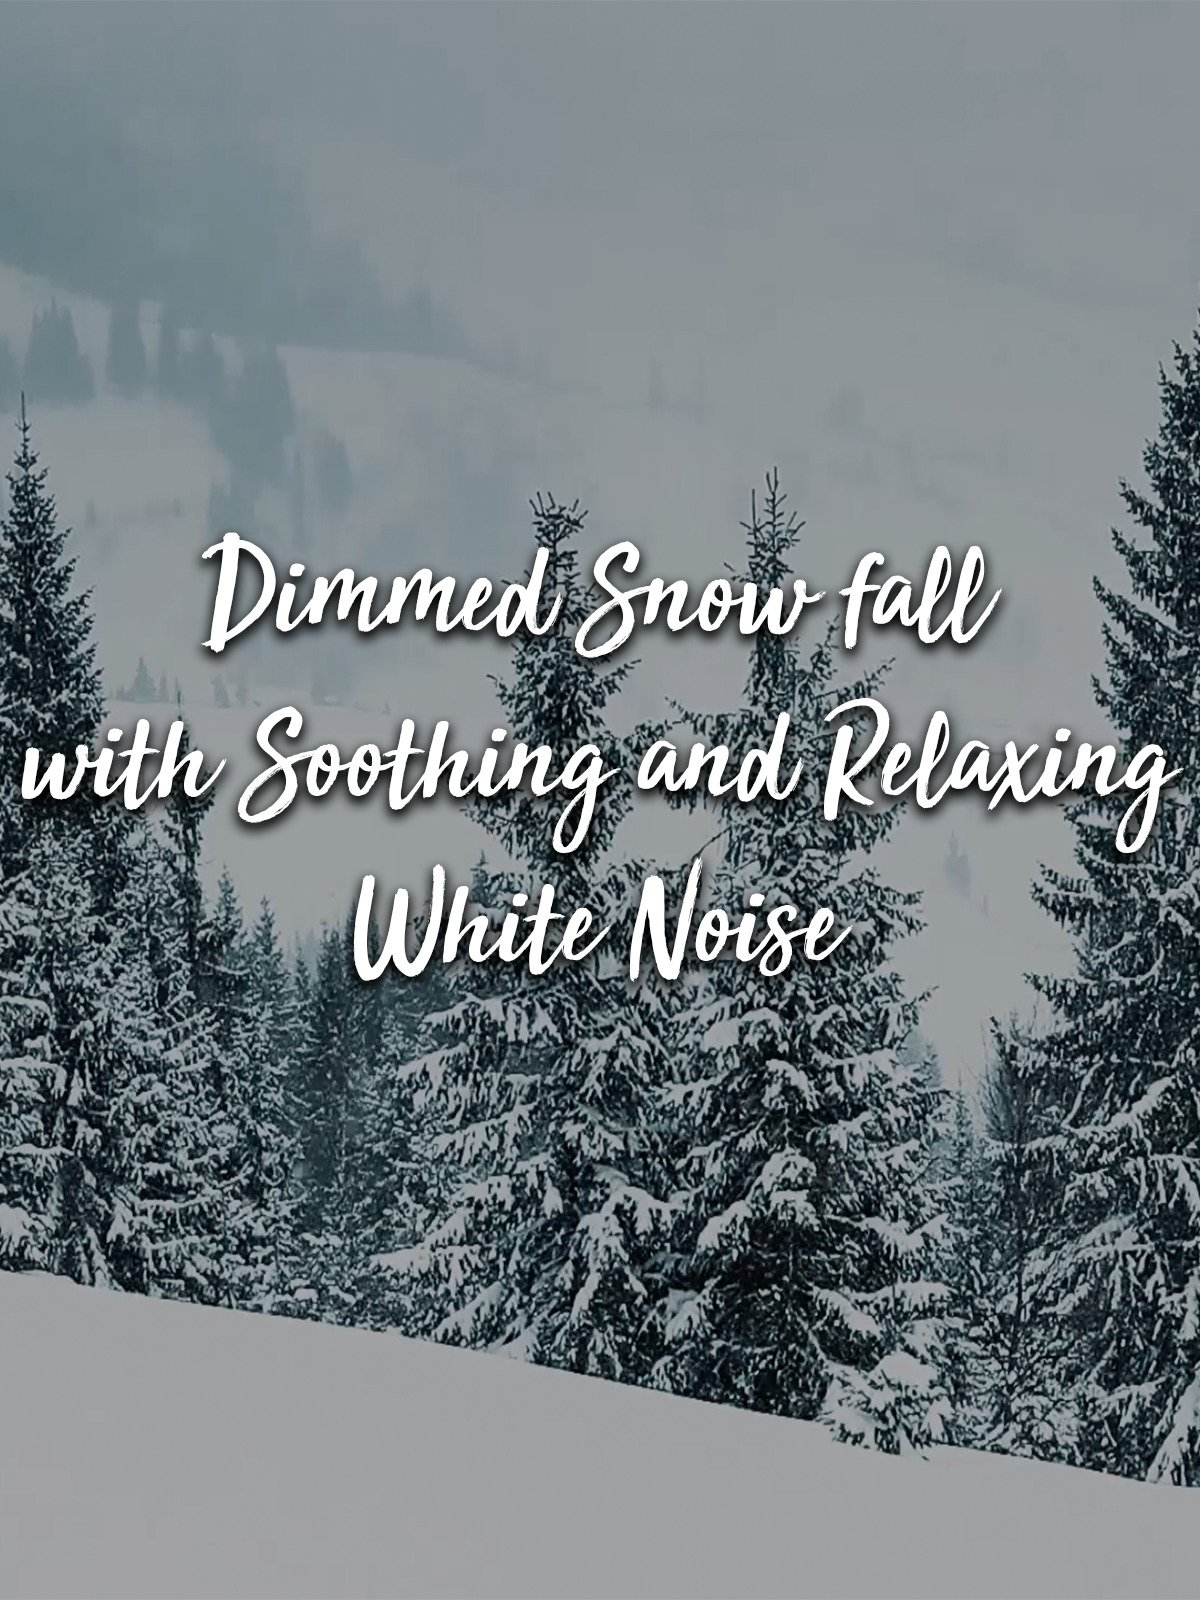 Dimmed Snow fall with Soothing and Relaxing White Noise